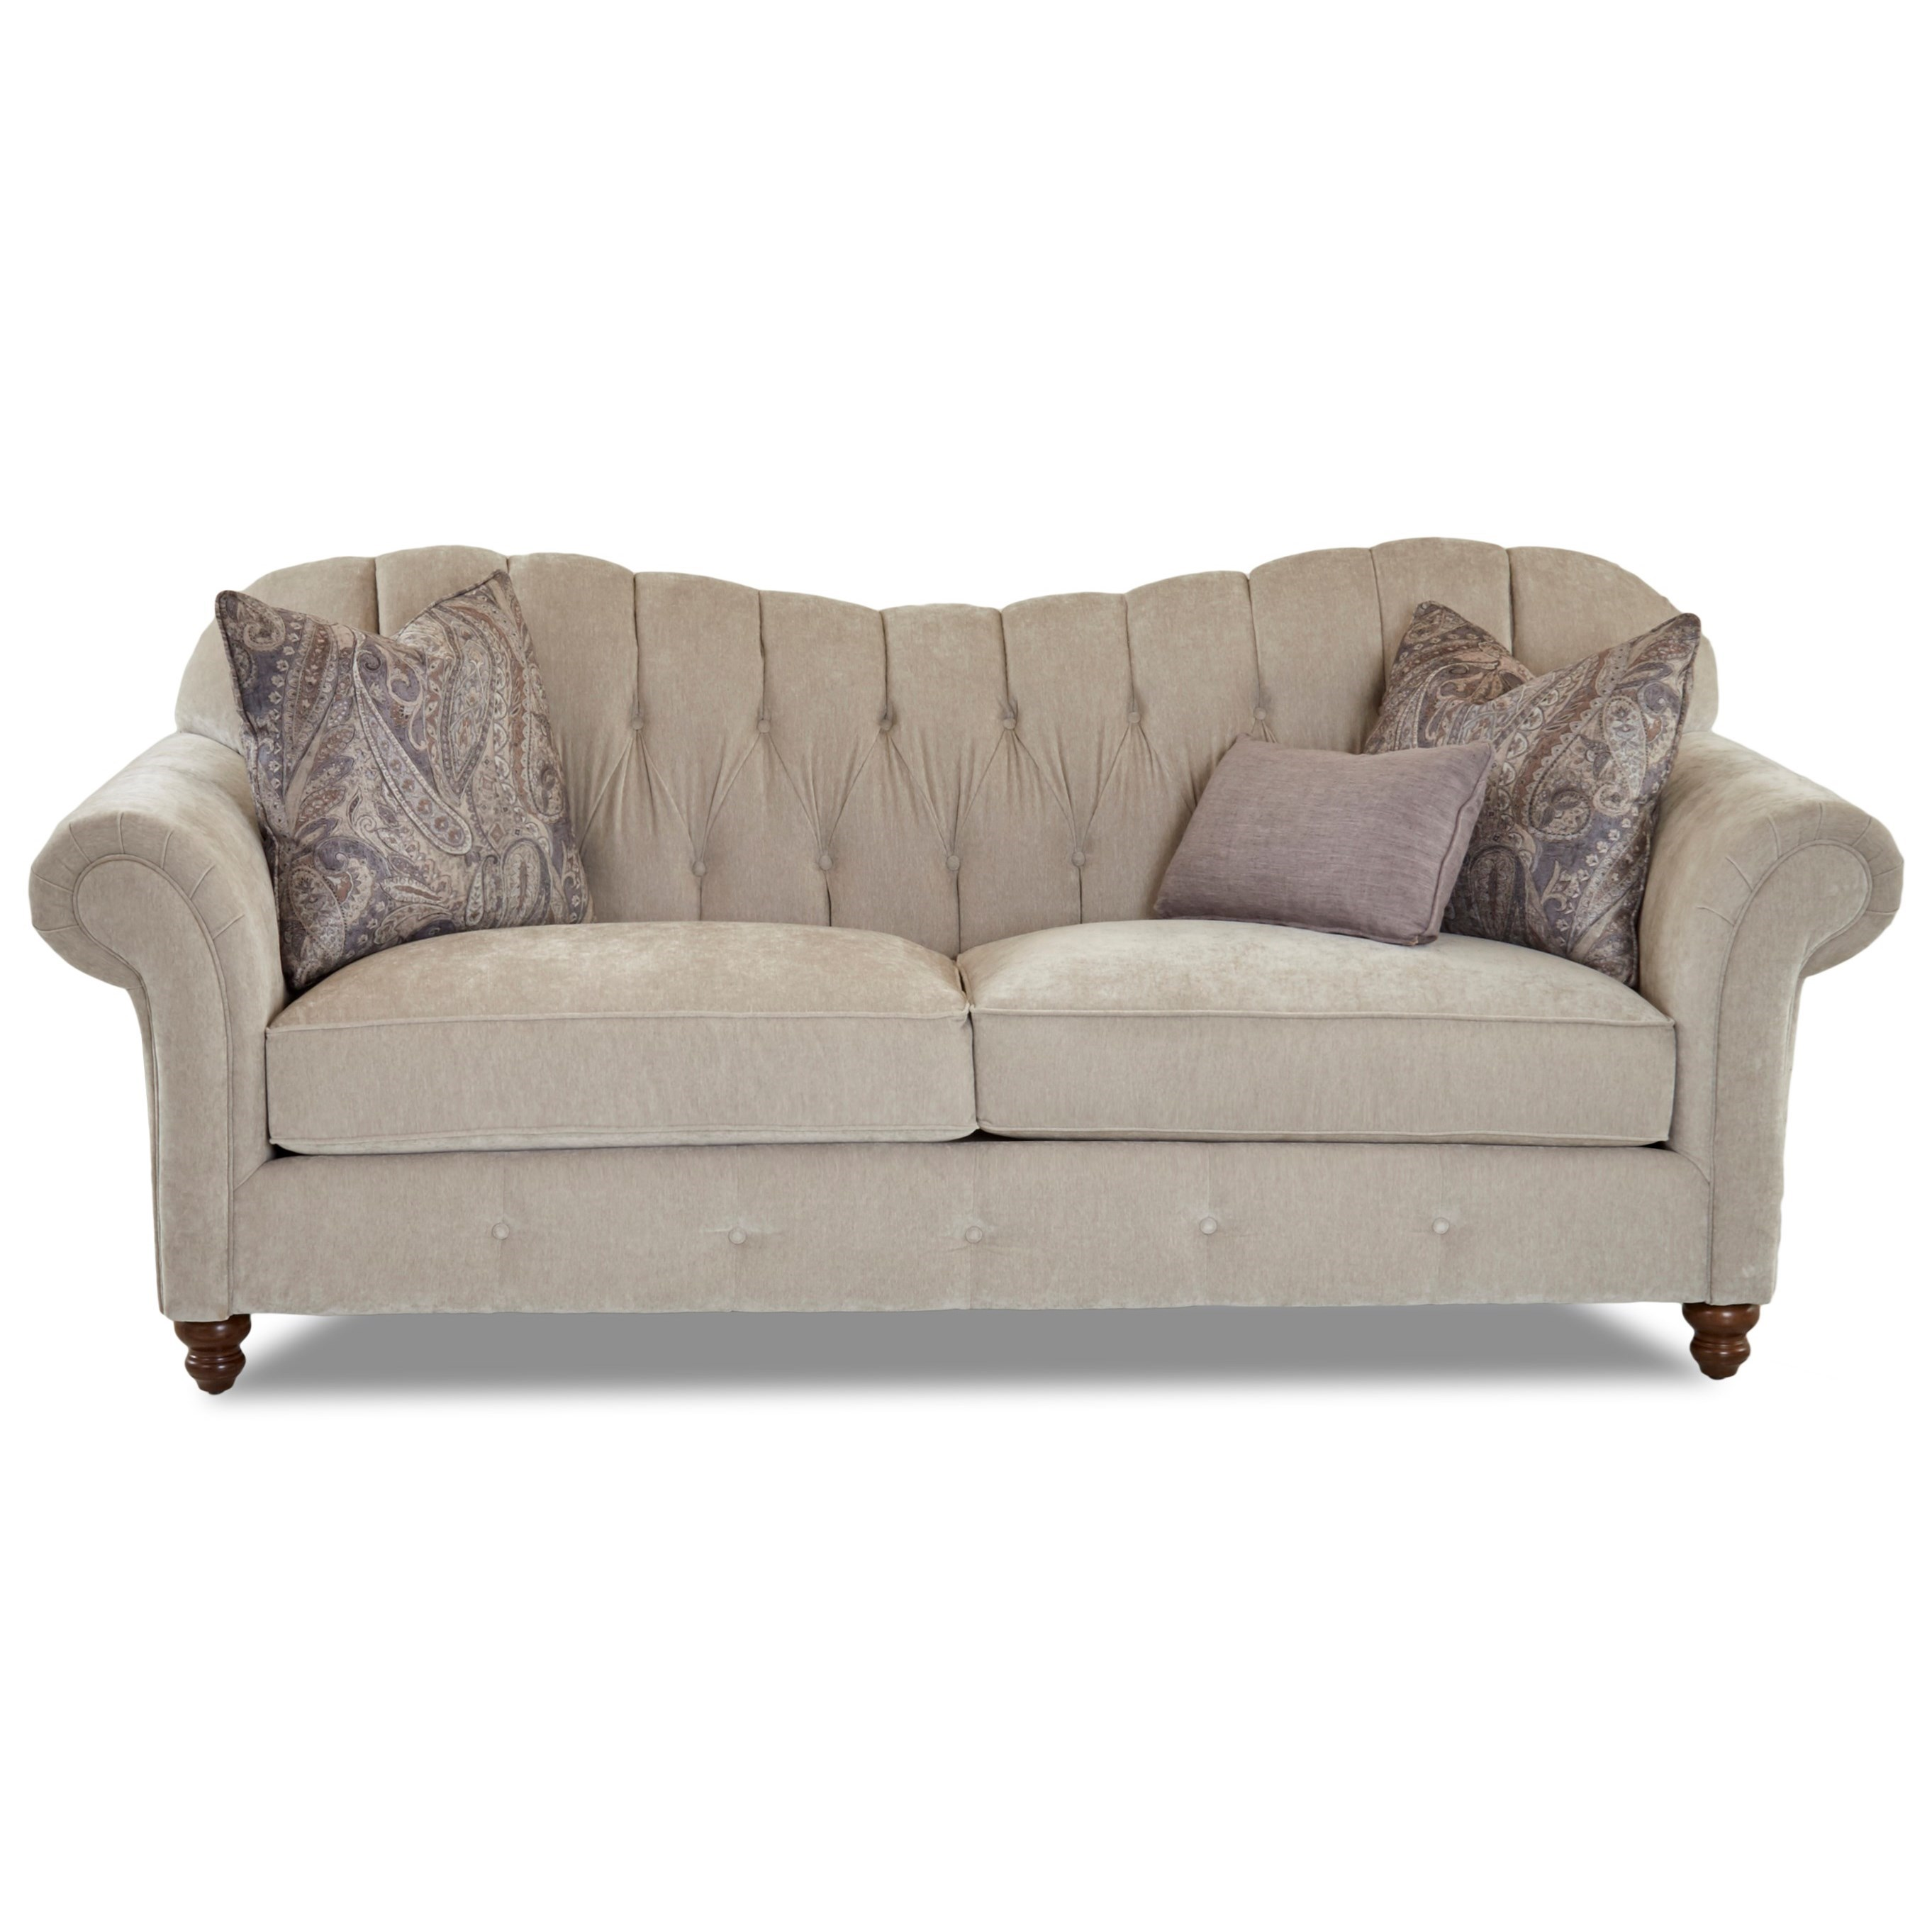 Traditional Sweetheart Back Sofa with Button Tufting